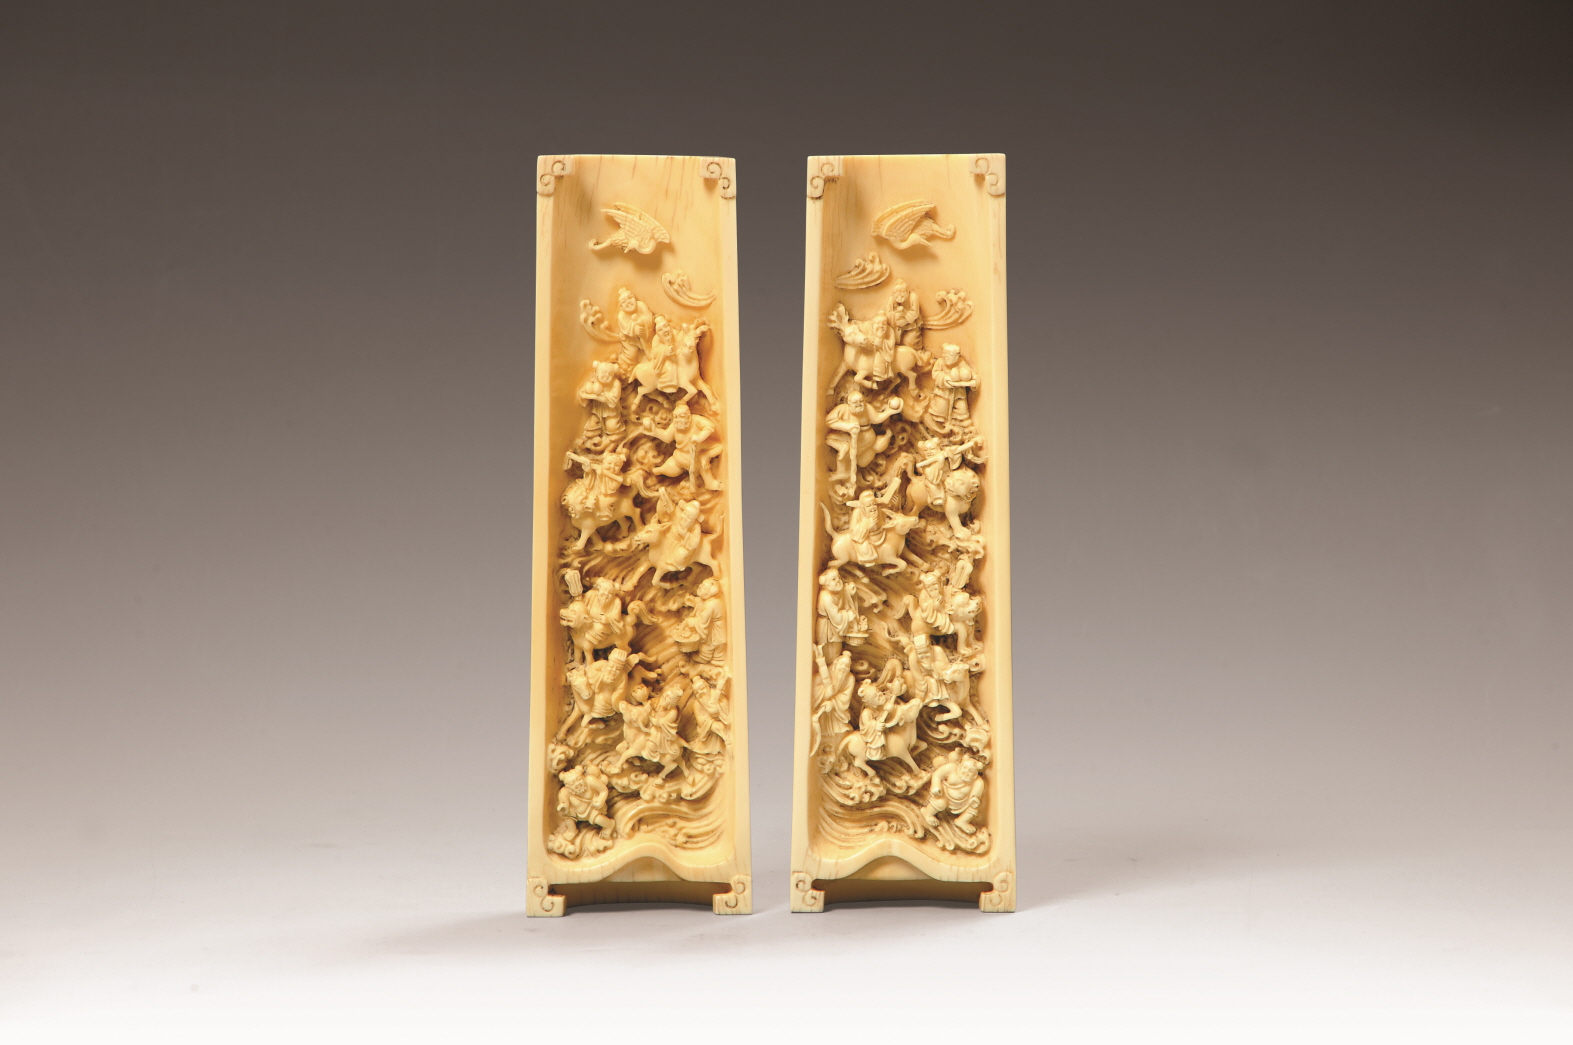 A Pair of Ivory Wrist Rests Carved with 'Eight Immortals Crossing the Sea' Design, Qing Dynasty, H21.9 W6.6 (2)